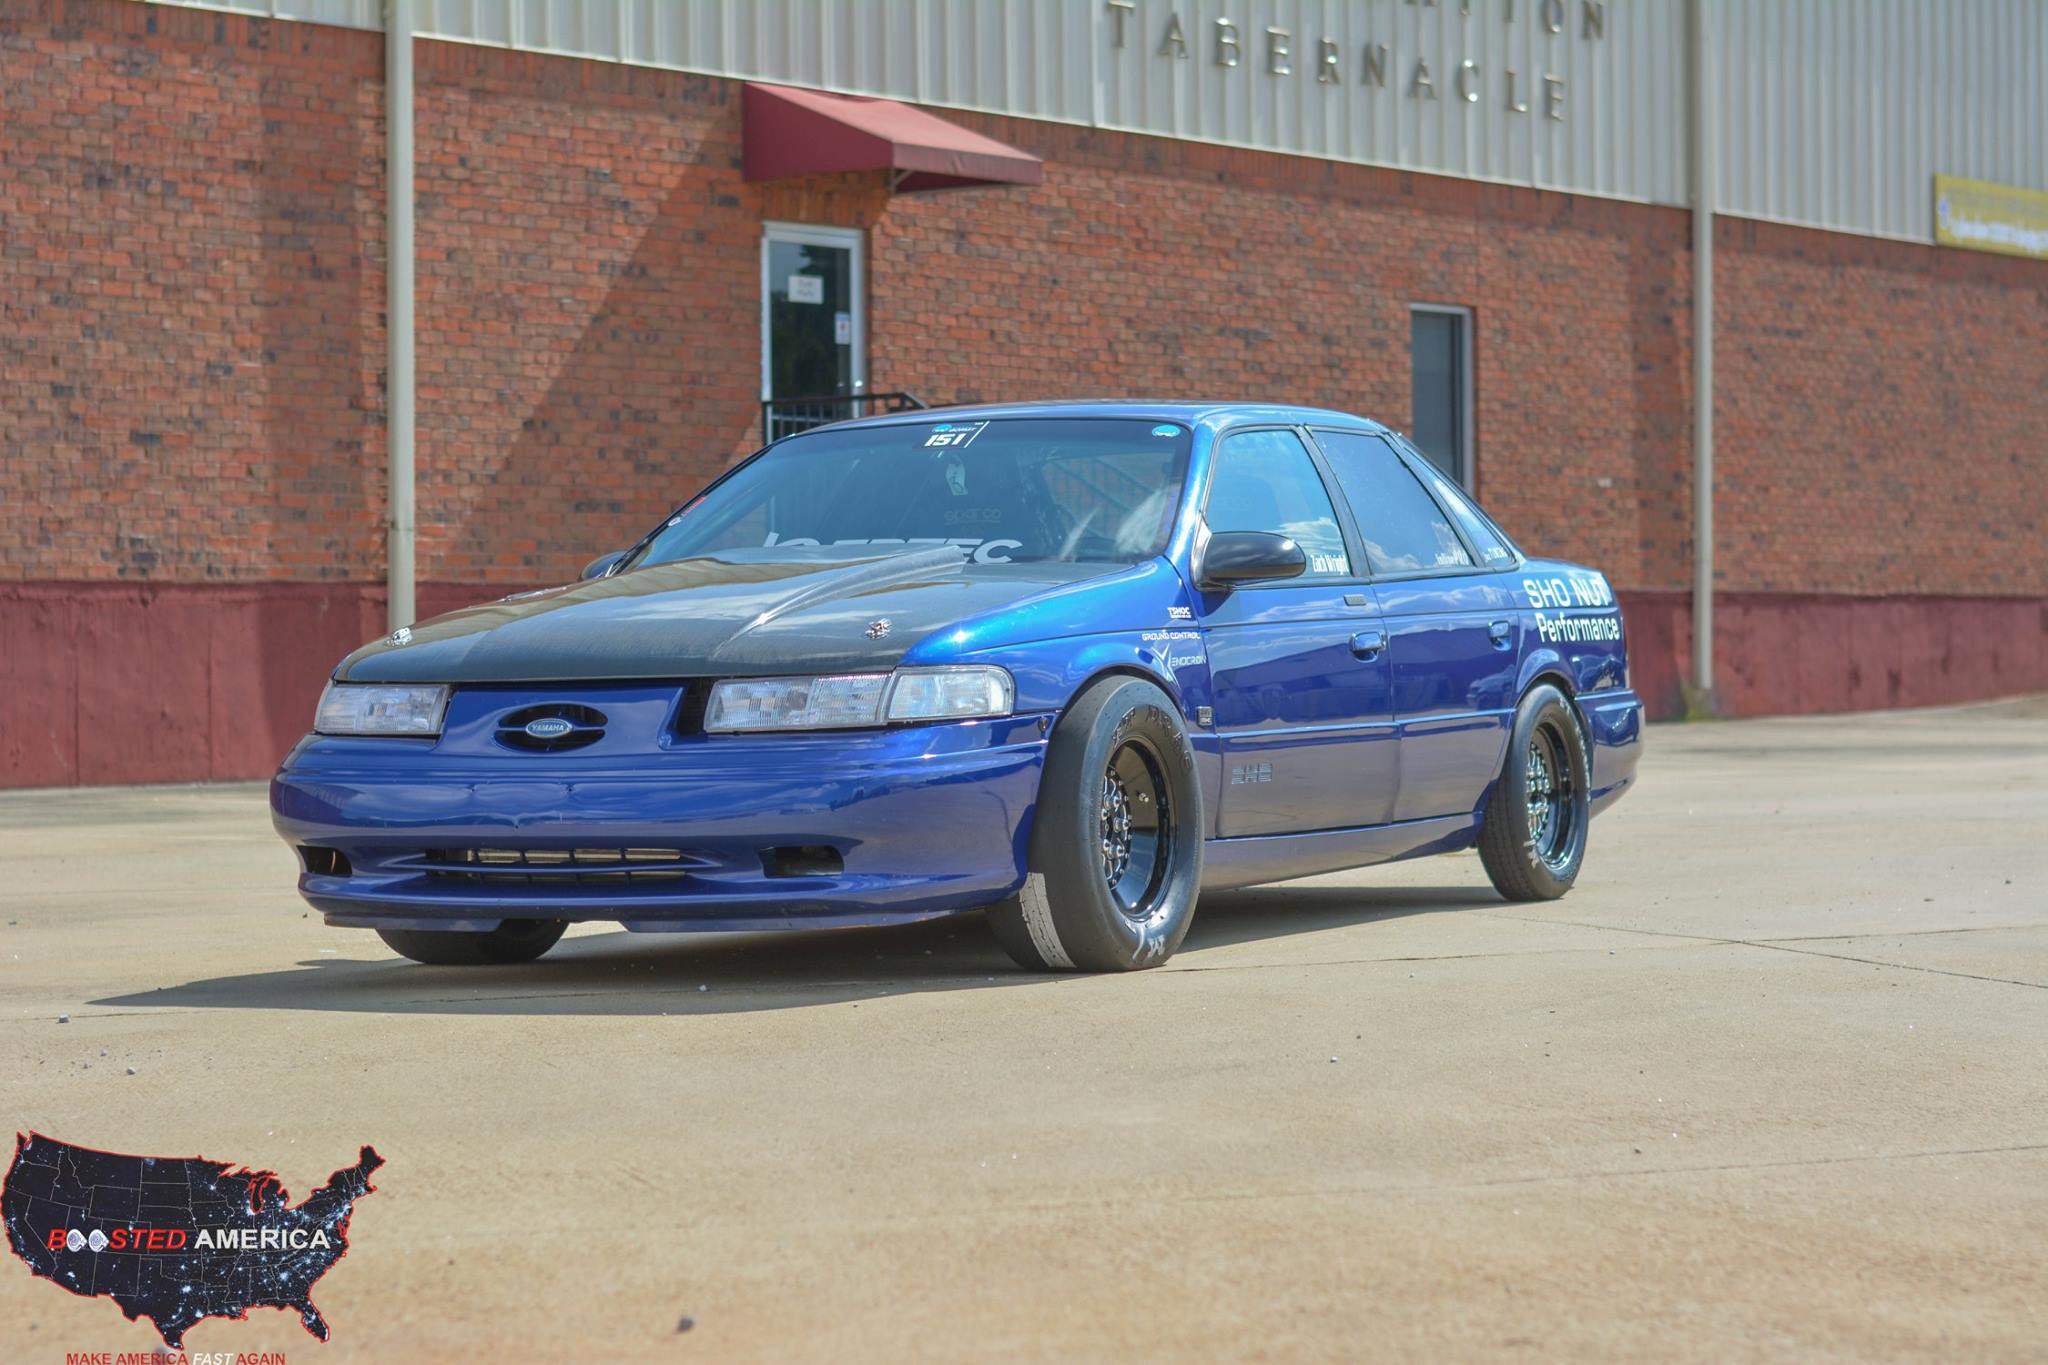 Zach Wright Affectionately Calls His Ford Taurus Sho The Blue Turd The Name Might Be Self Deprecating But Nothing About This Car Is Modest